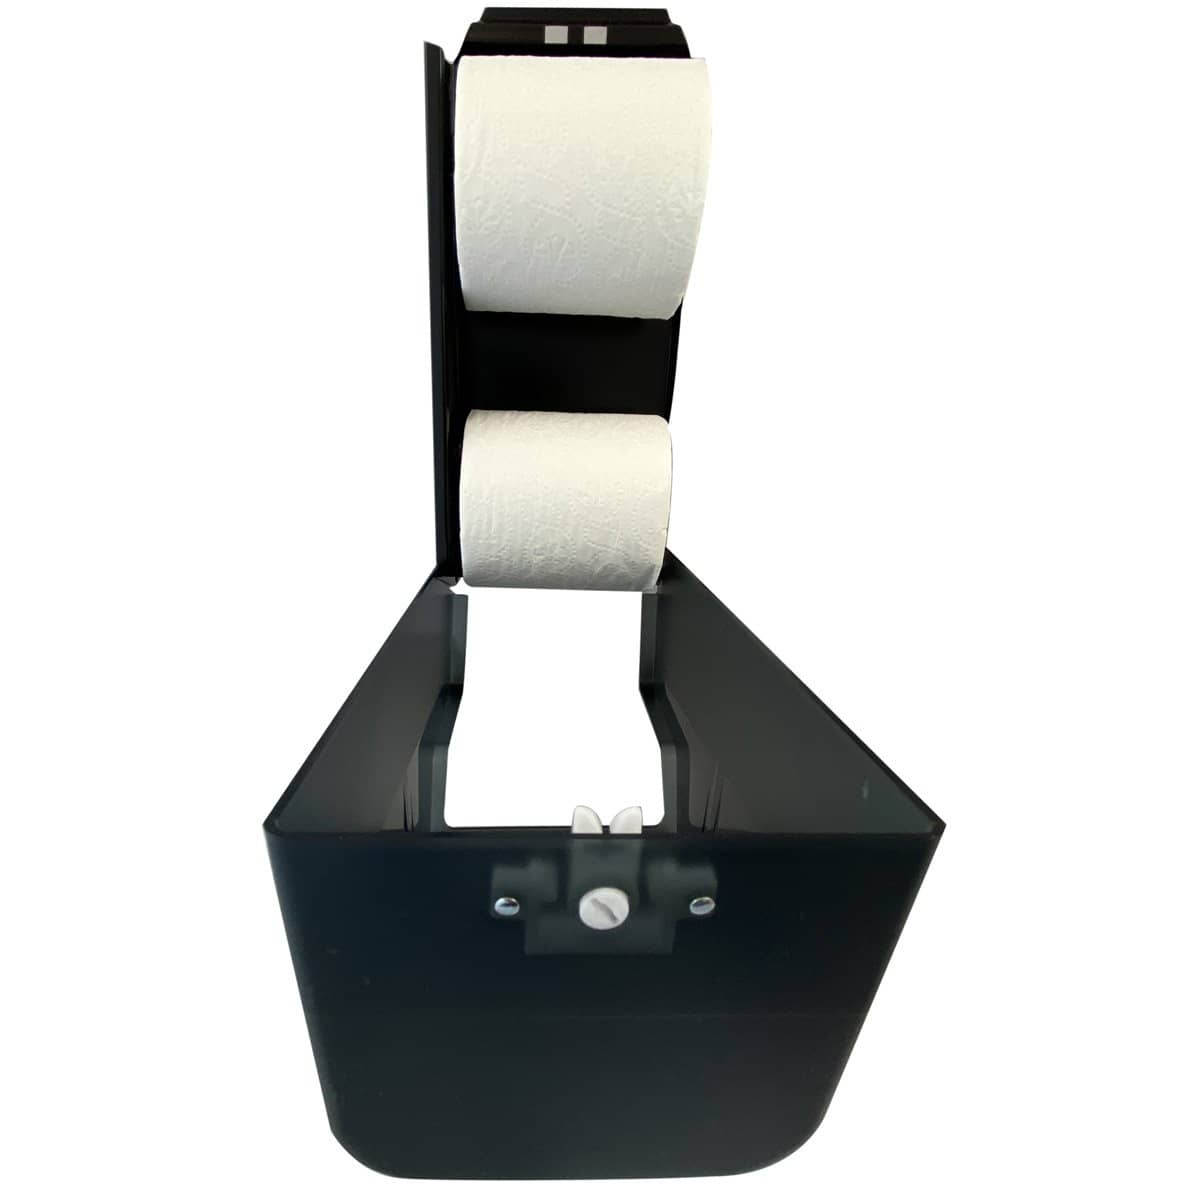 VISTA Standard Roll TP Dispenser, Dark Translucent - TP3004 - TotalRestroom.com